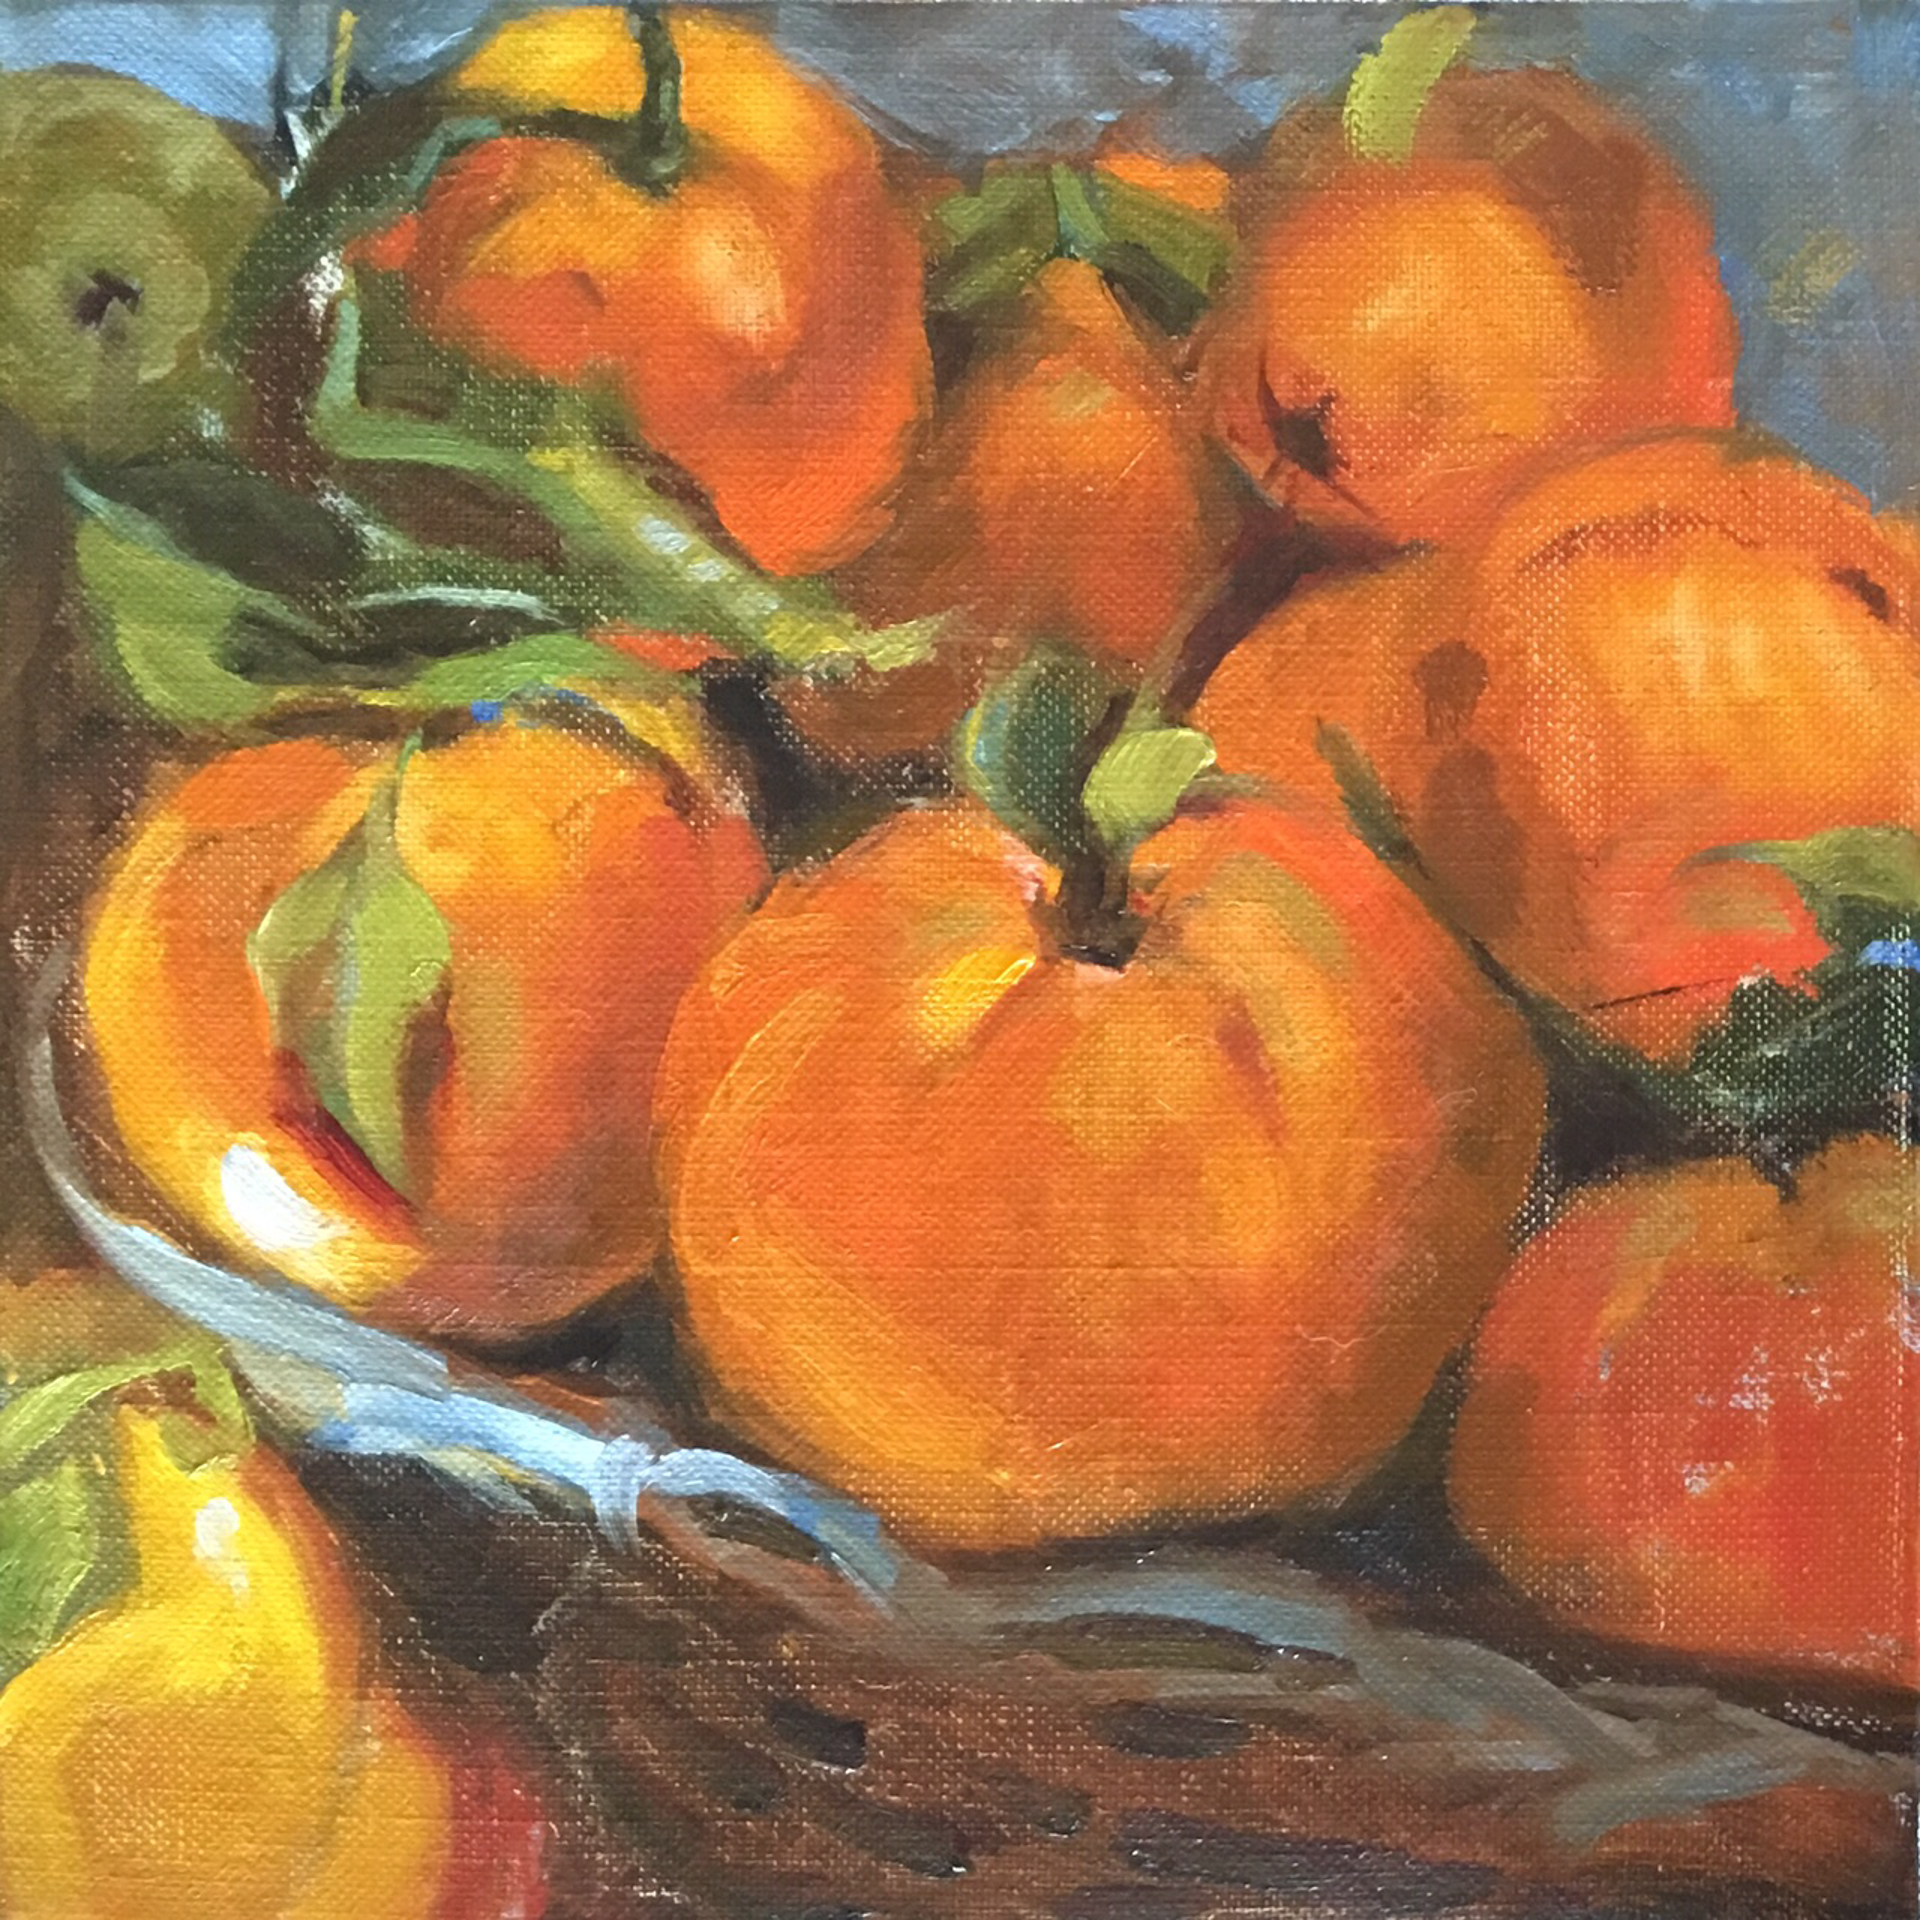 Apples to Oranges by Laurie Meyer